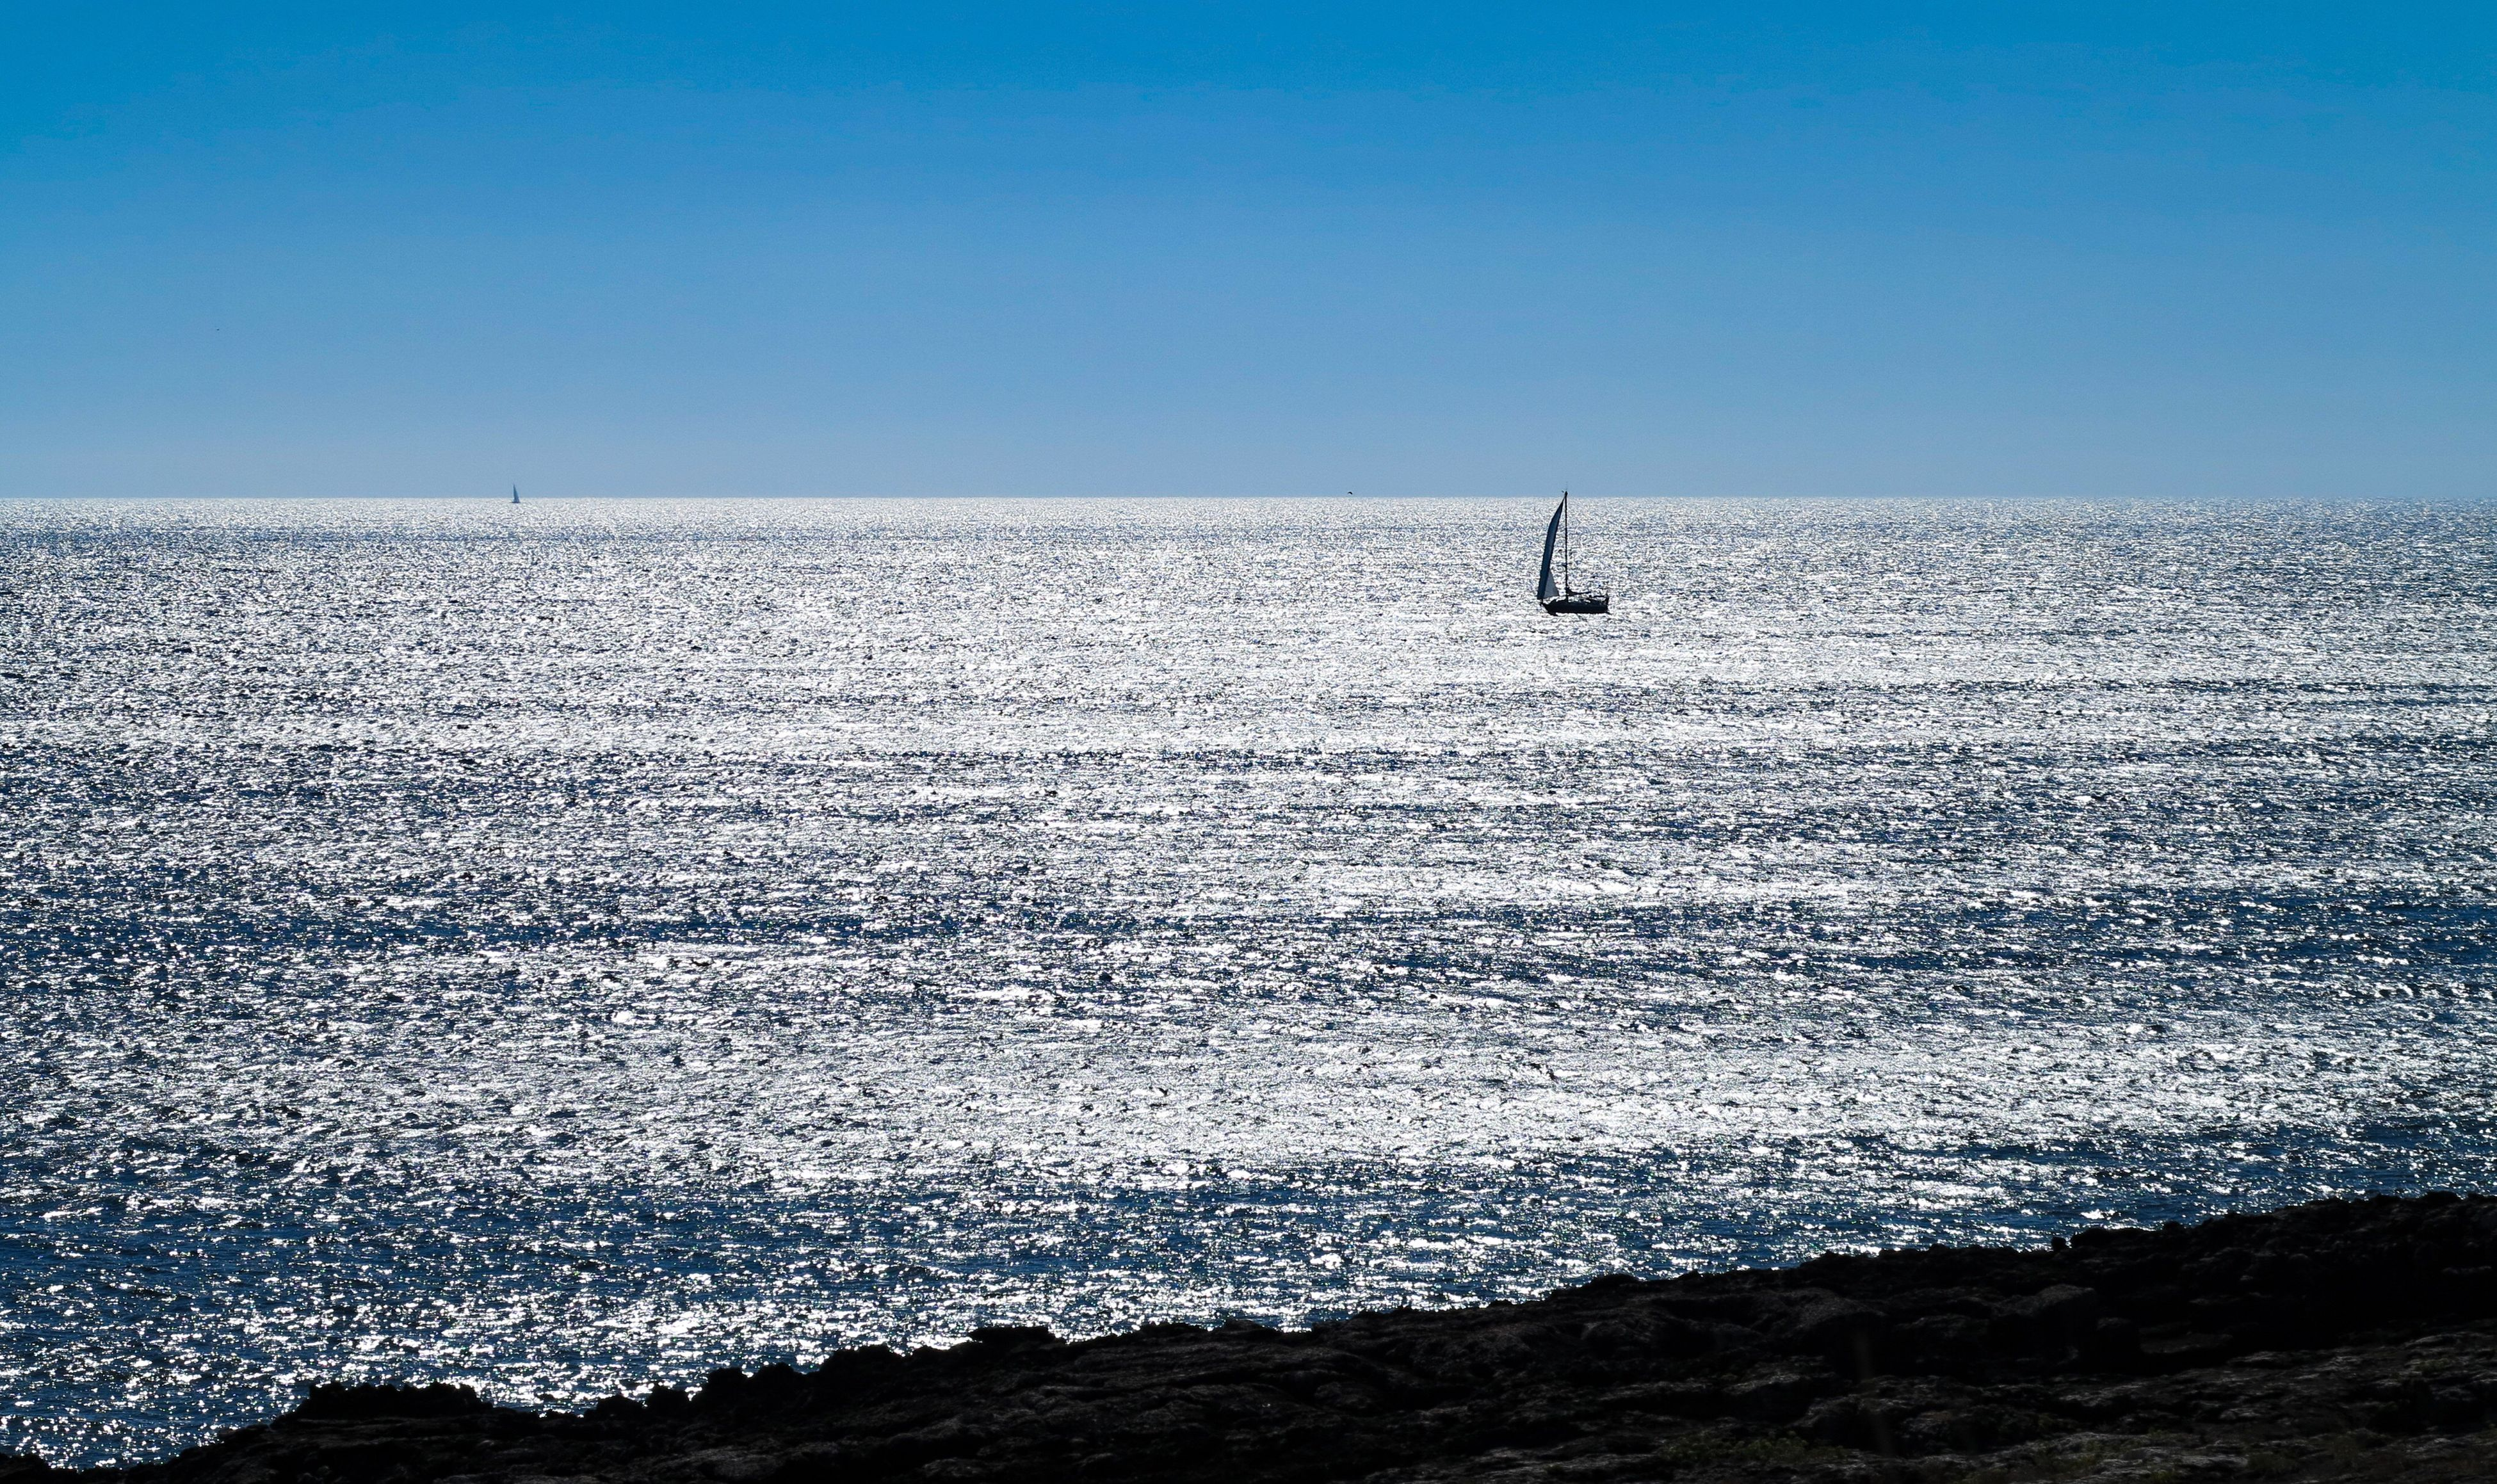 sea, nature, beauty in nature, scenics, tranquility, water, day, horizon over water, clear sky, tranquil scene, outdoors, waterfront, sky, no people, blue